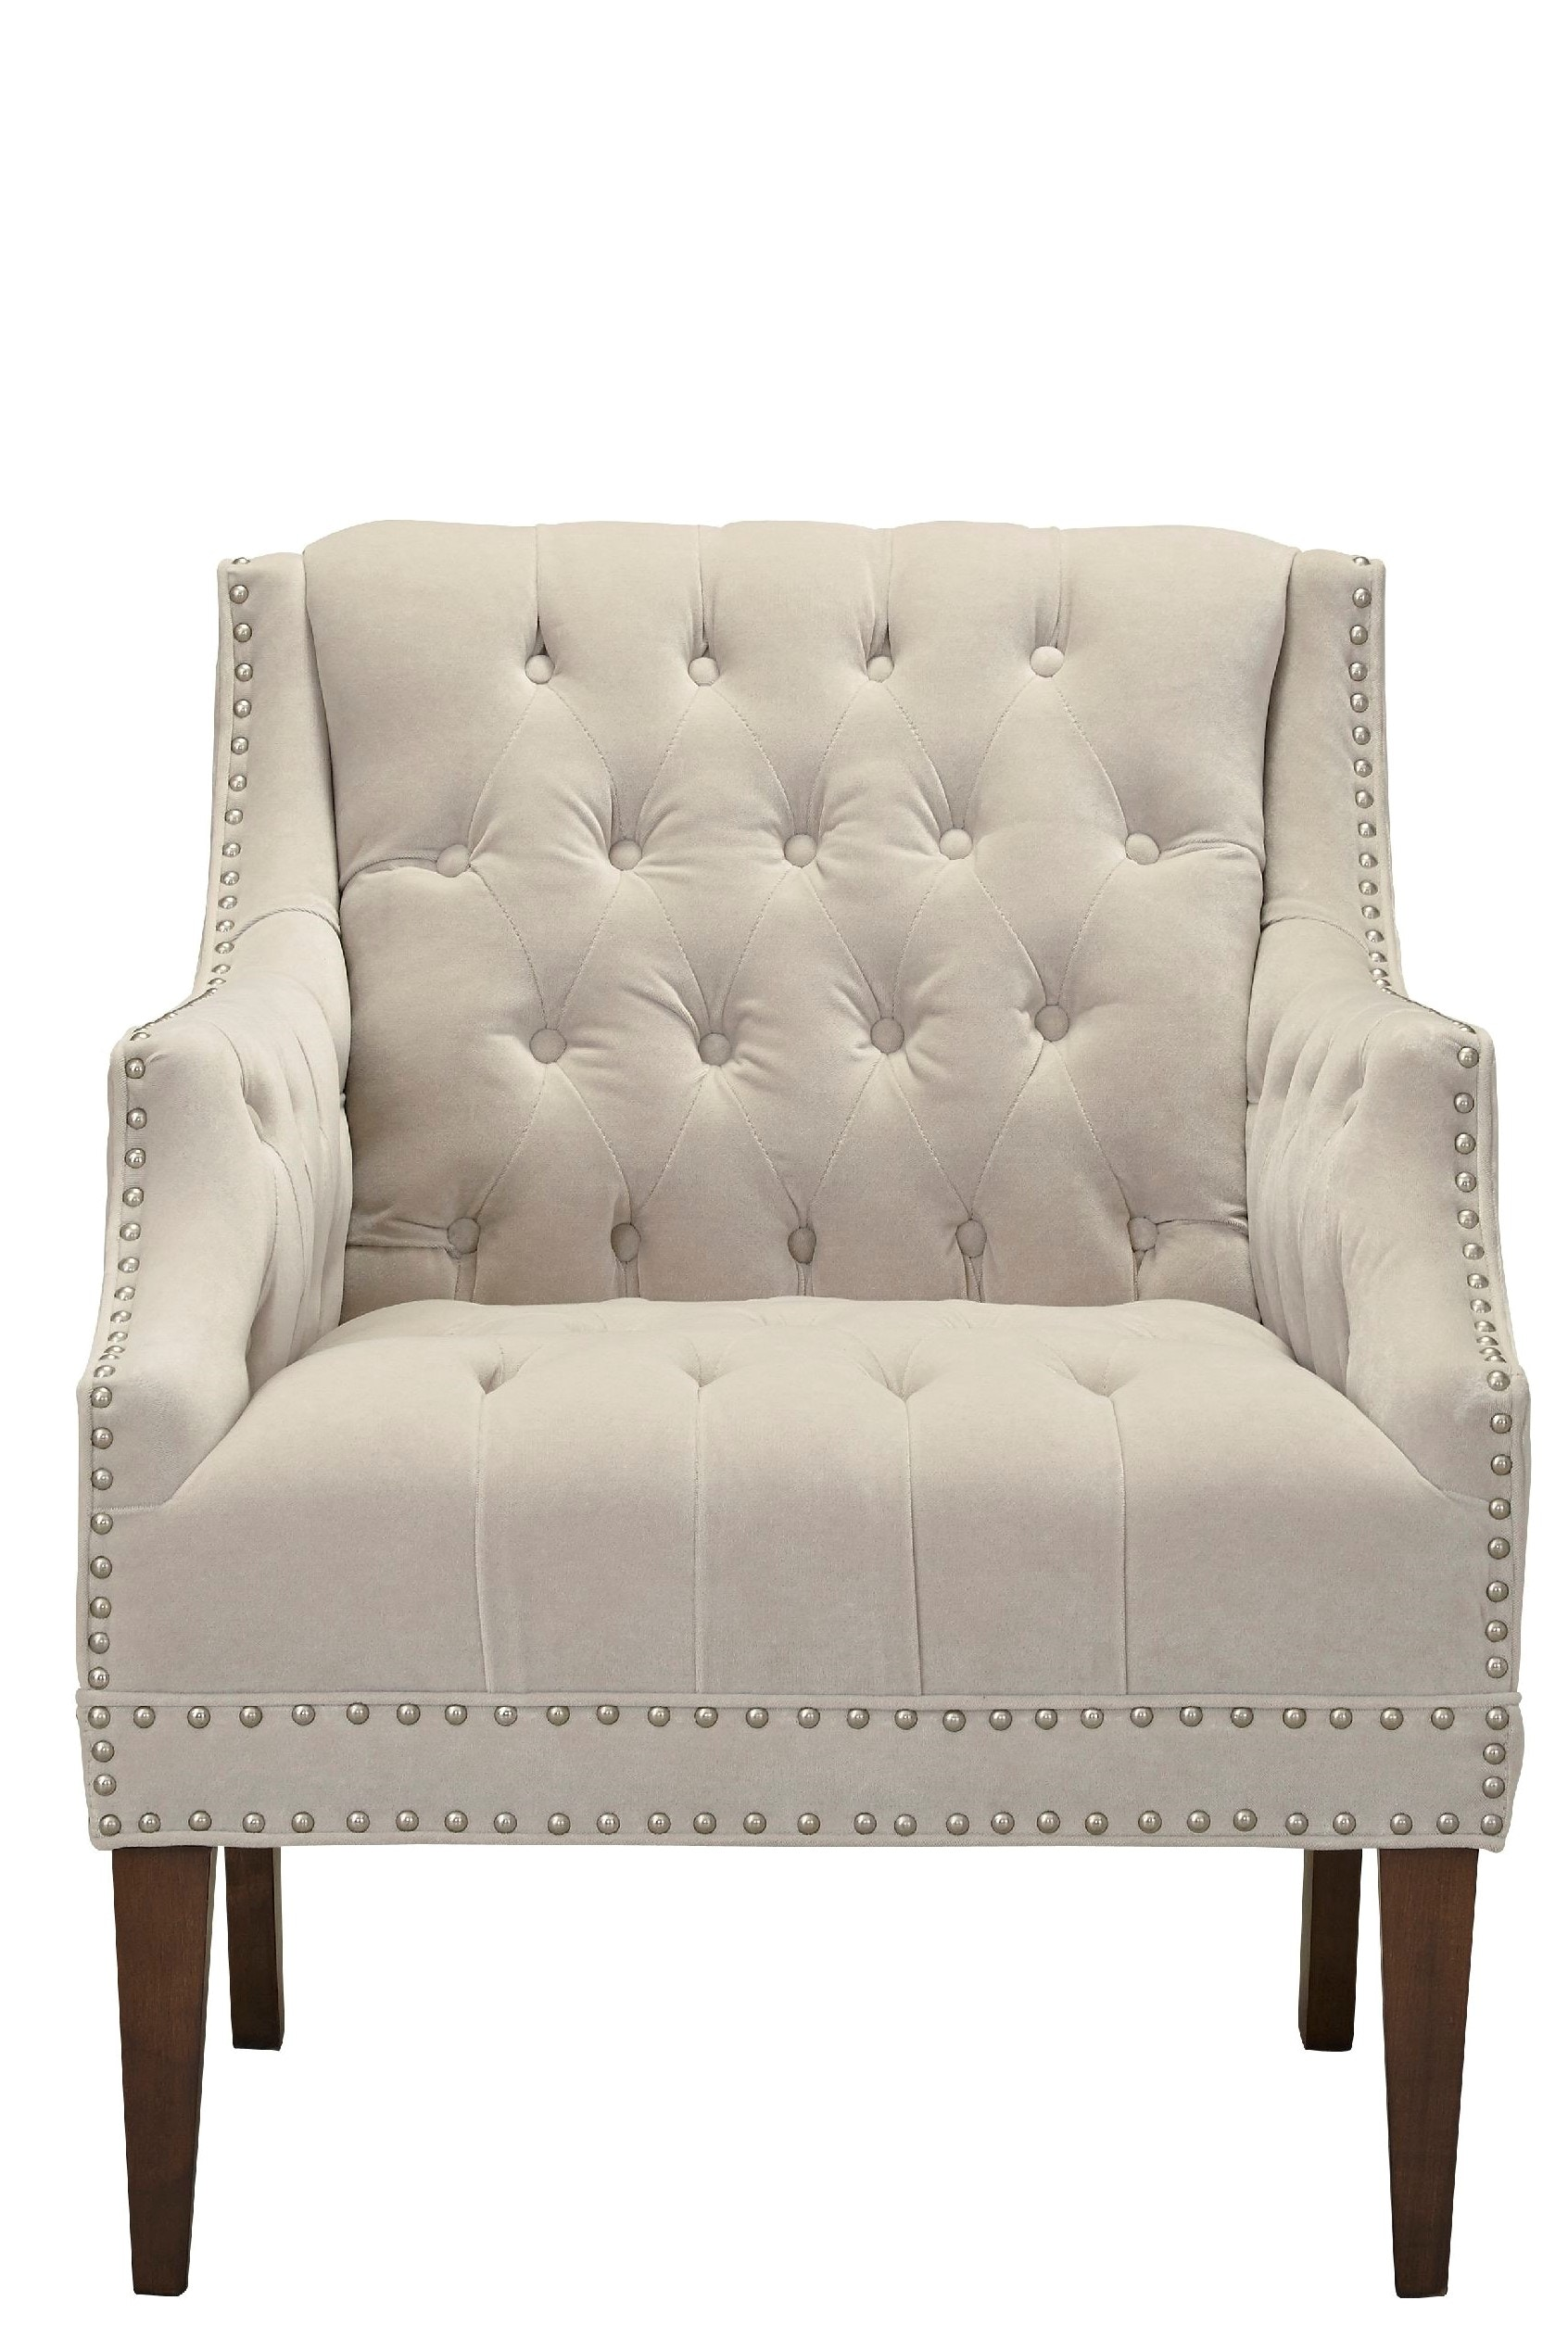 Southern Furniture Living Room Charlotte Chair Nails 23443